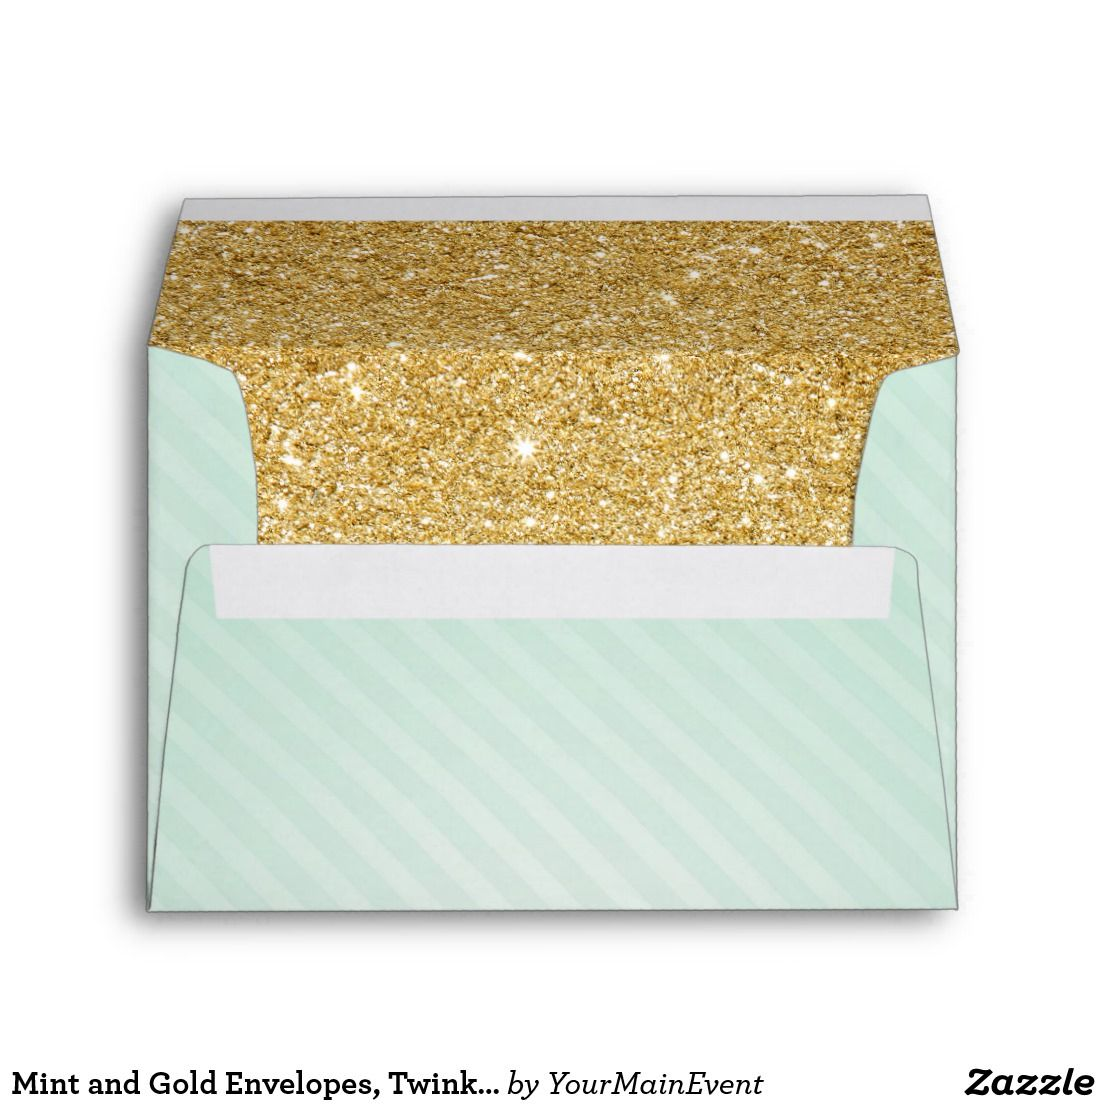 Mint and Gold Envelopes, Twinkle Little Star Envelope Twinkle ...